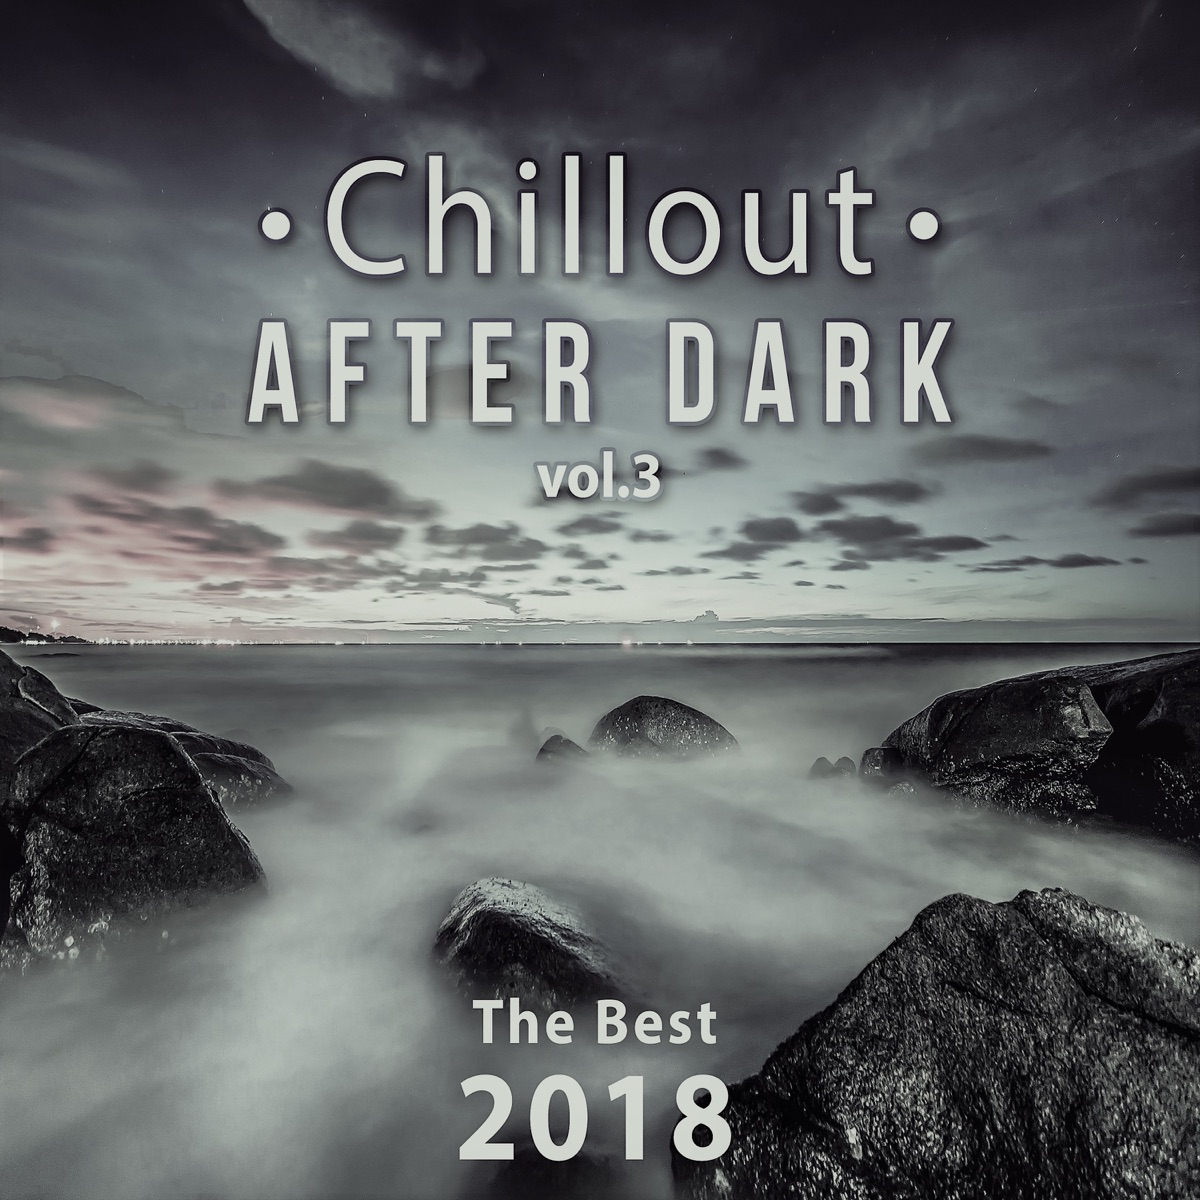 dbf343630fd7 Chillout After Dark Vol. 3: The Best 2018 Playlist, Relax on the ...